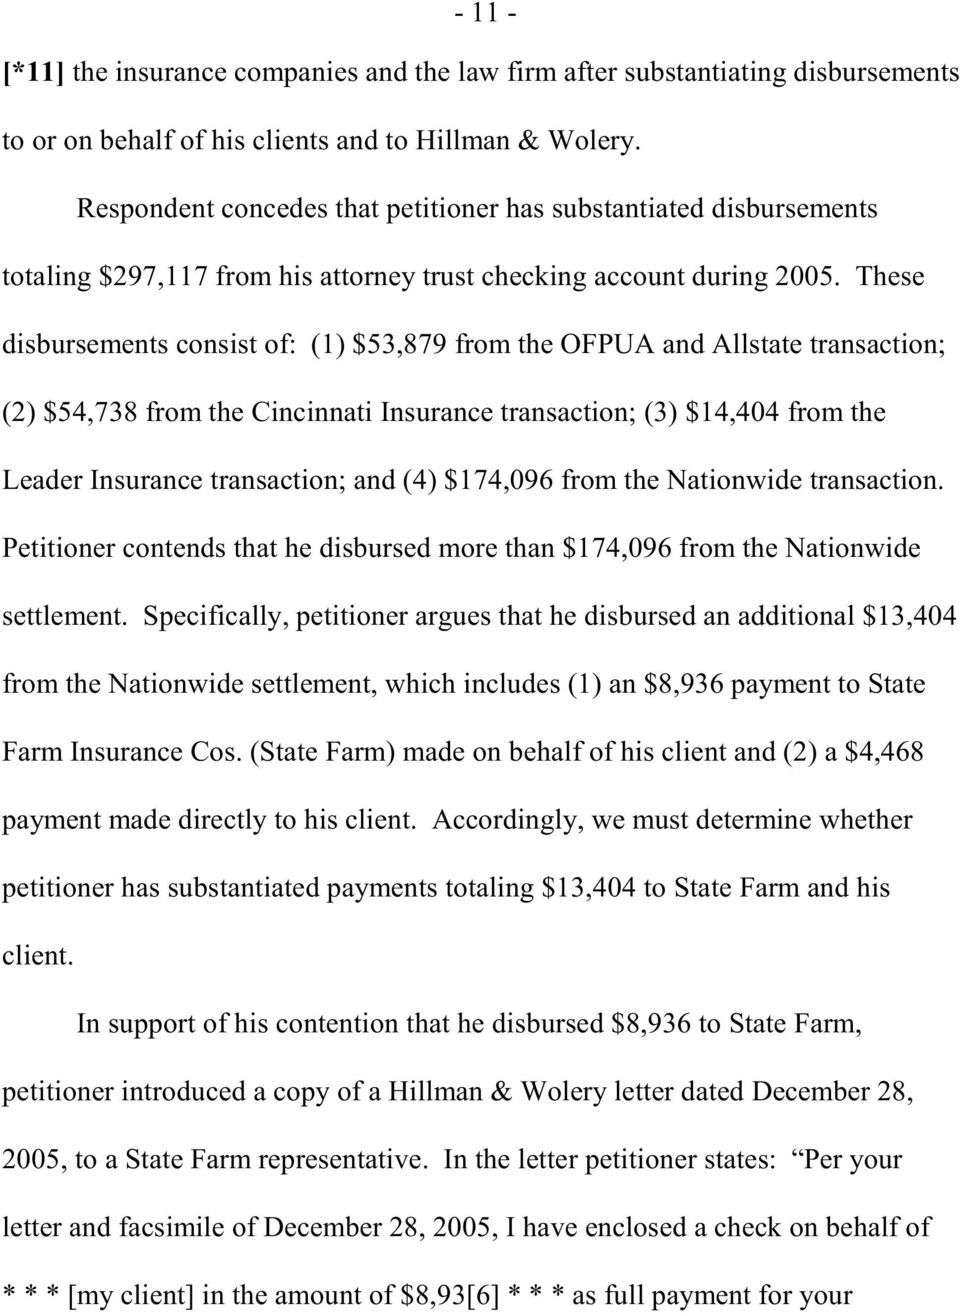 These disbursements consist of: (1) $53,879 from the OFPUA and Allstate transaction; (2) $54,738 from the Cincinnati Insurance transaction; (3) $14,404 from the Leader Insurance transaction; and (4)